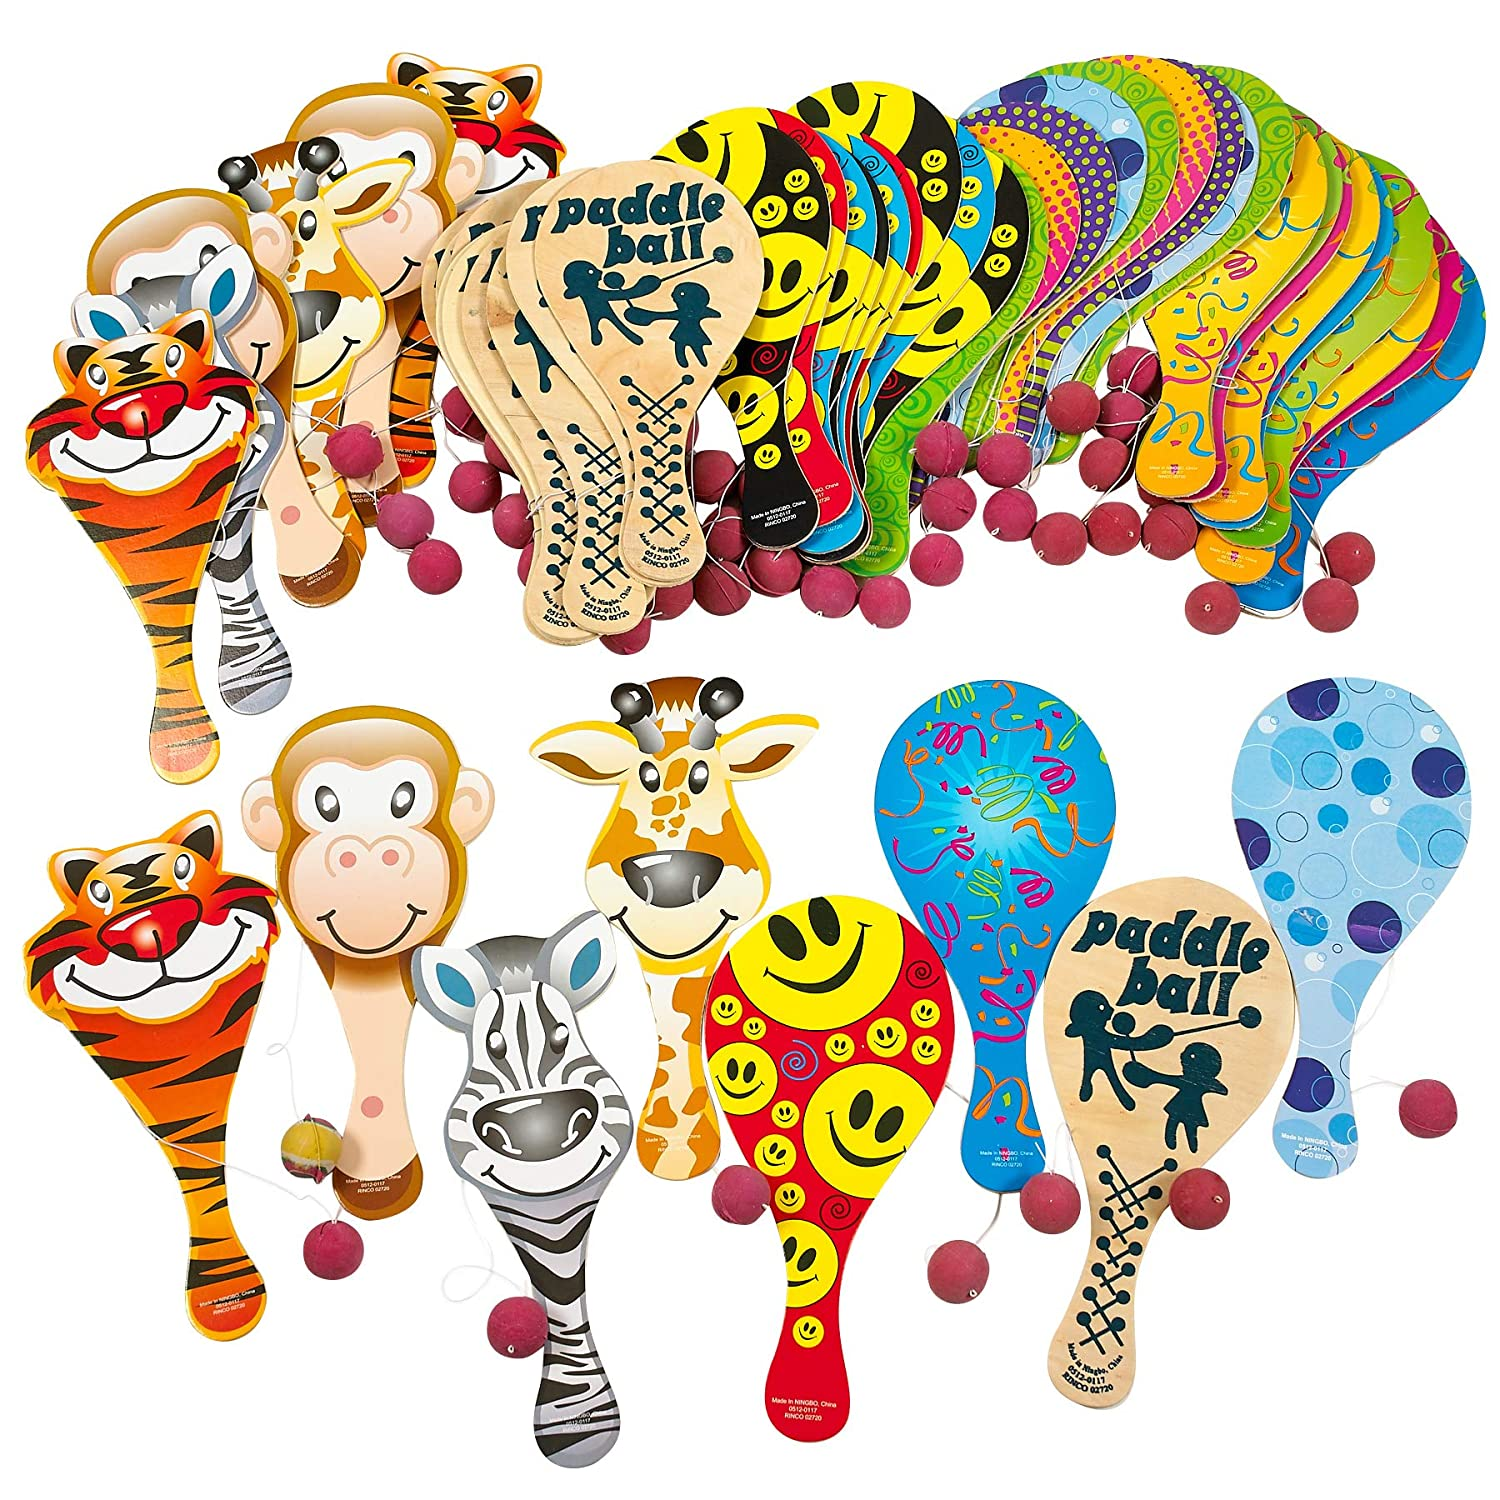 Assortments May Vary Party Favors Colorful Kicko 9 Inches Paddle Ball Assortment 6 Pieces Party Prizes for Children Games or Adults 6 Pack